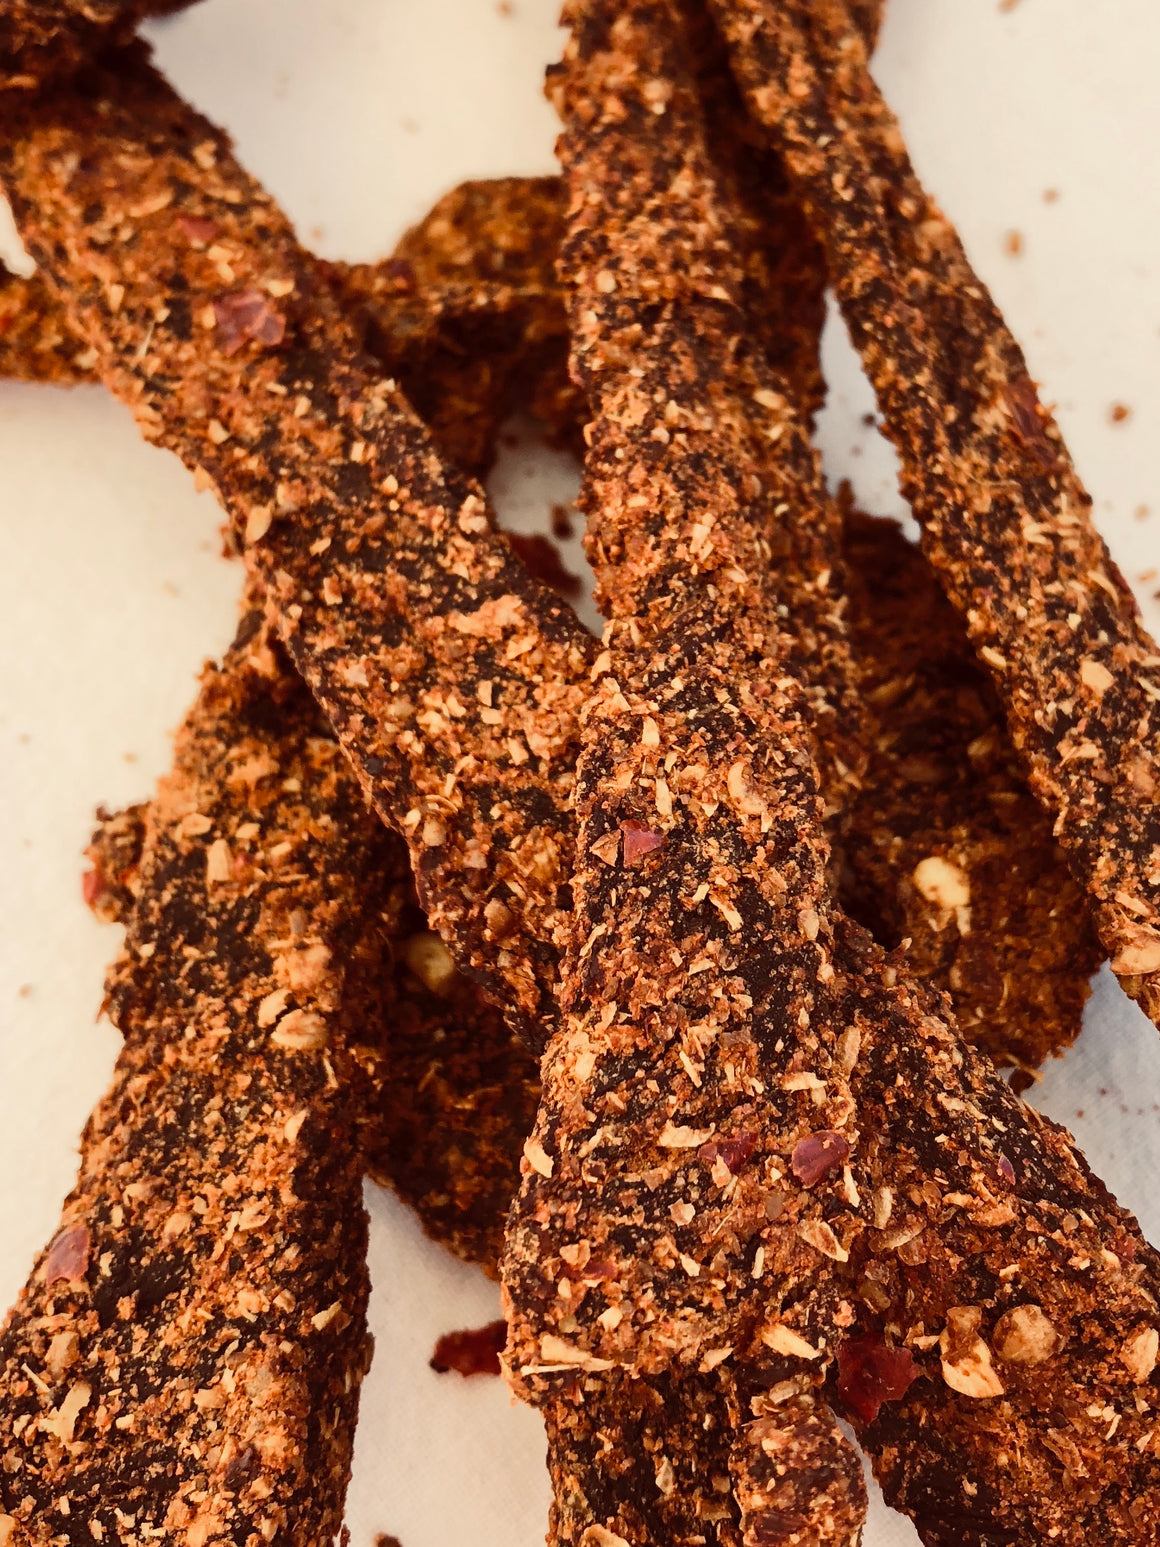 Mother-In-Laws Tongue - XXX Chilli Sticks (50g)